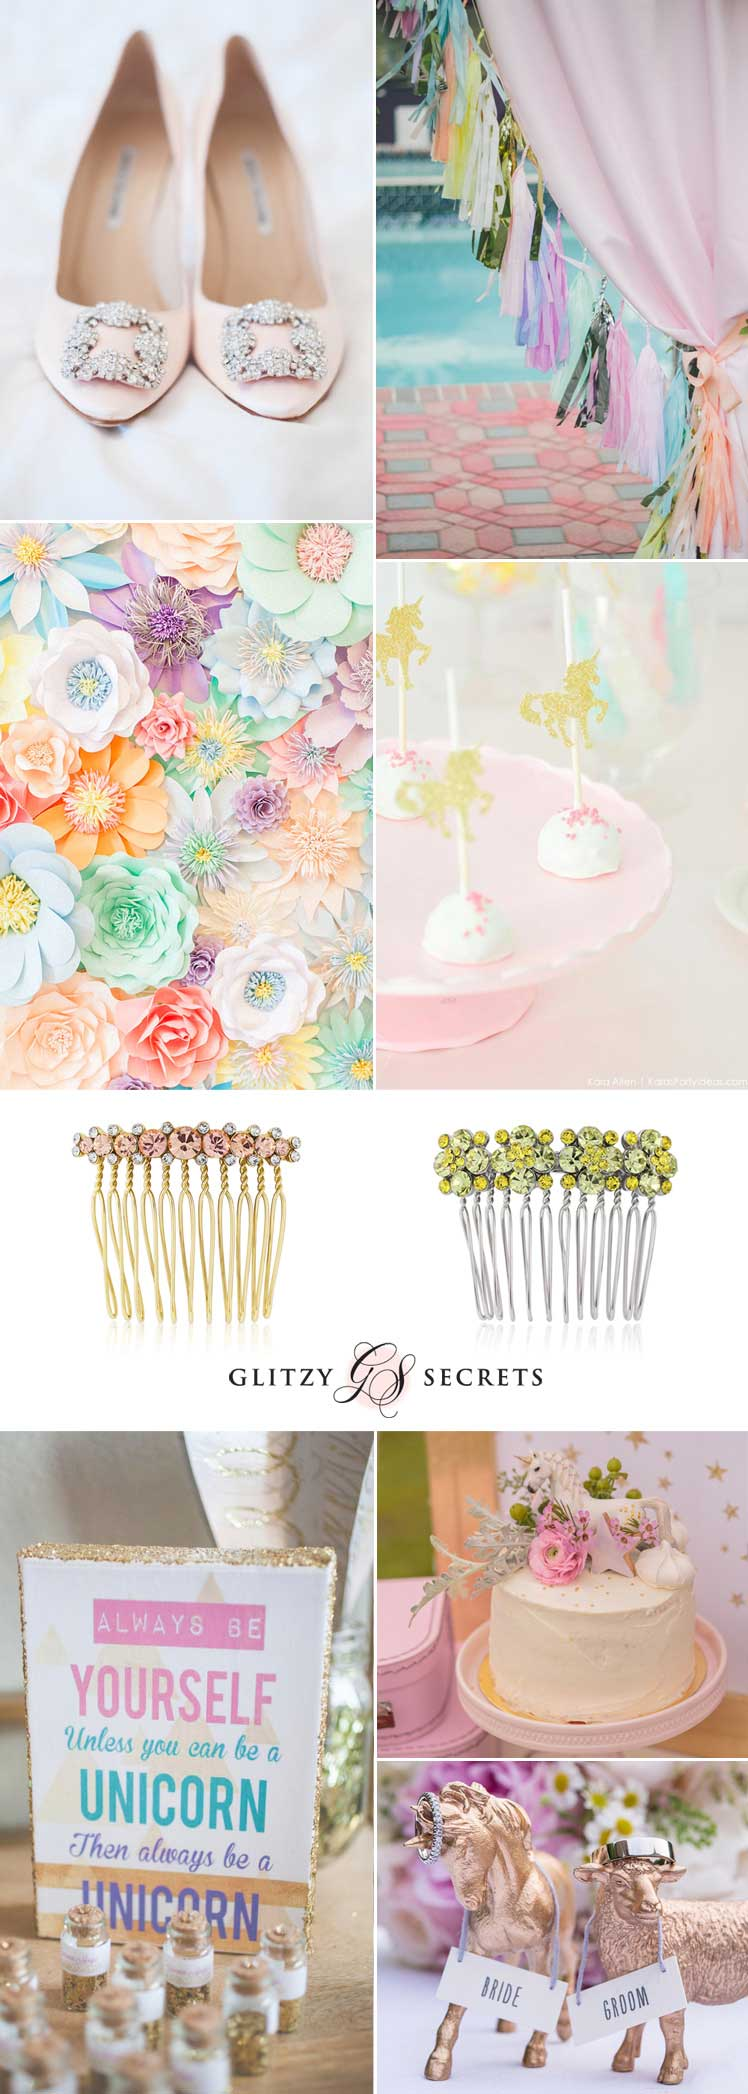 Ideas for a magical pastel unicorn wedding theme